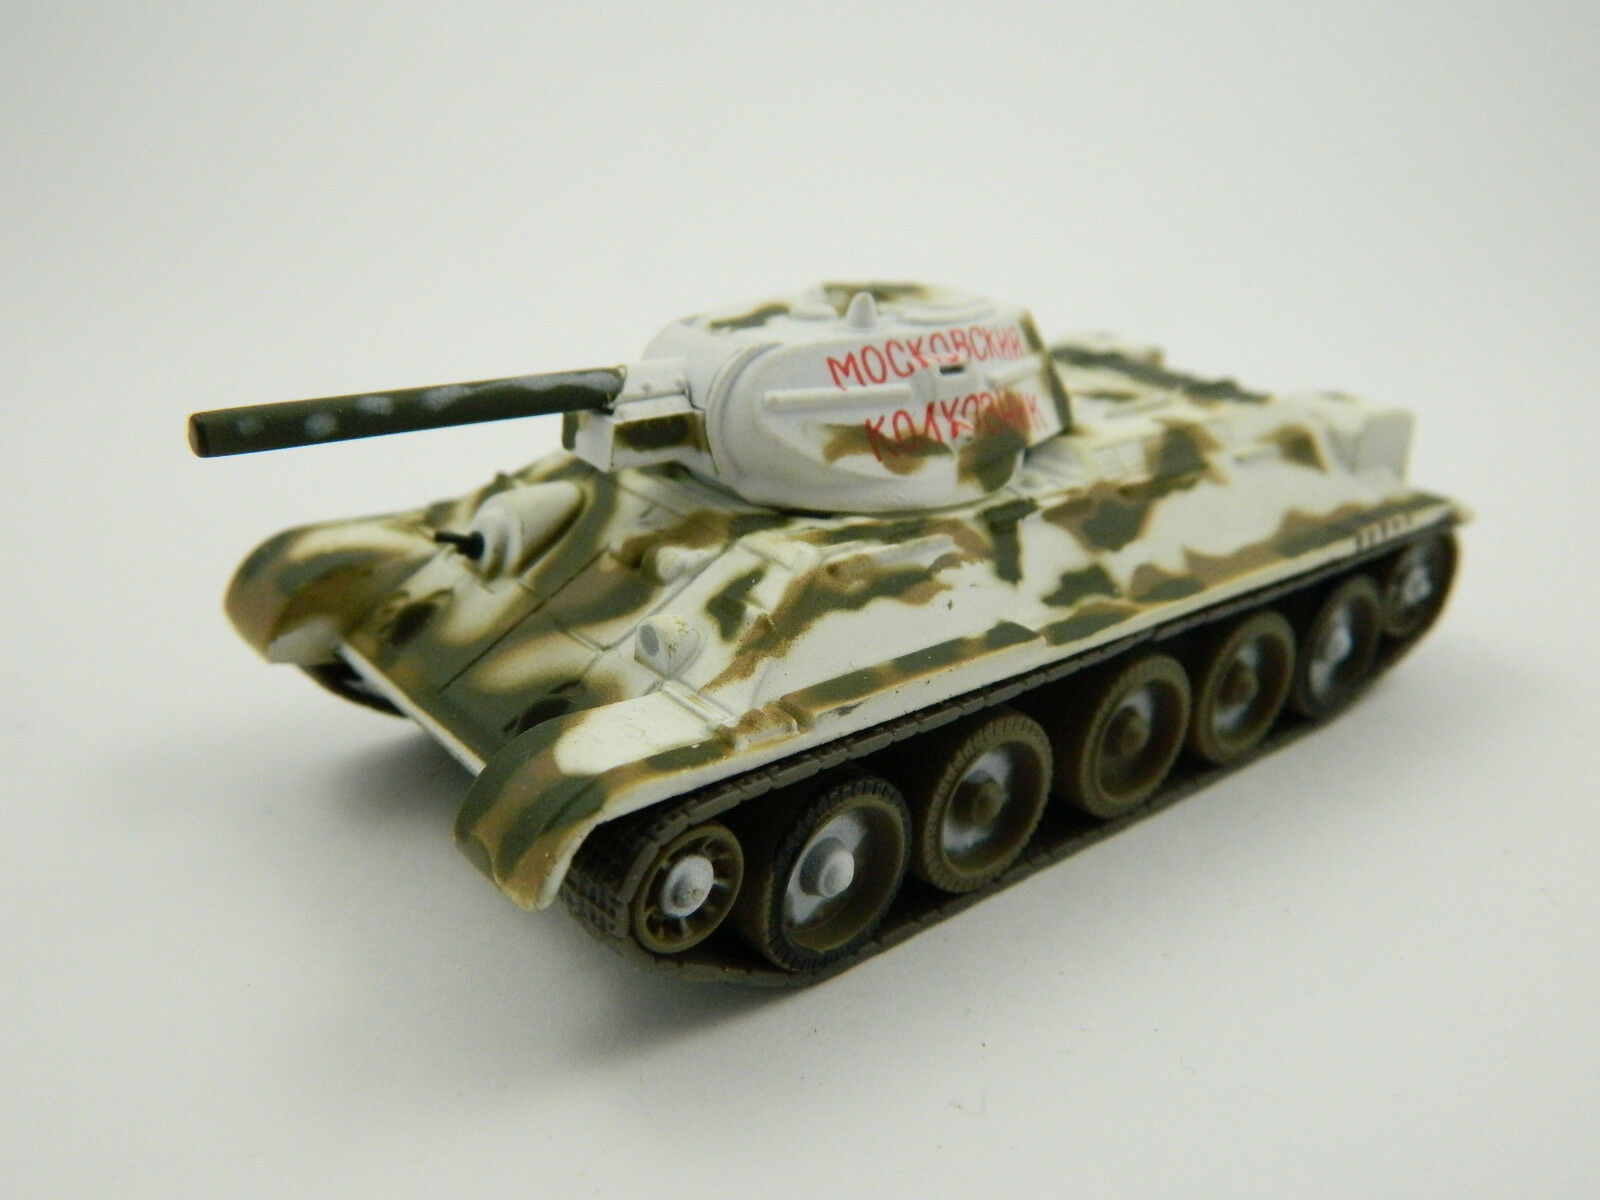 T-34 1942, Russia, 1 72nd scale diecast Tank №23 by Fabbri